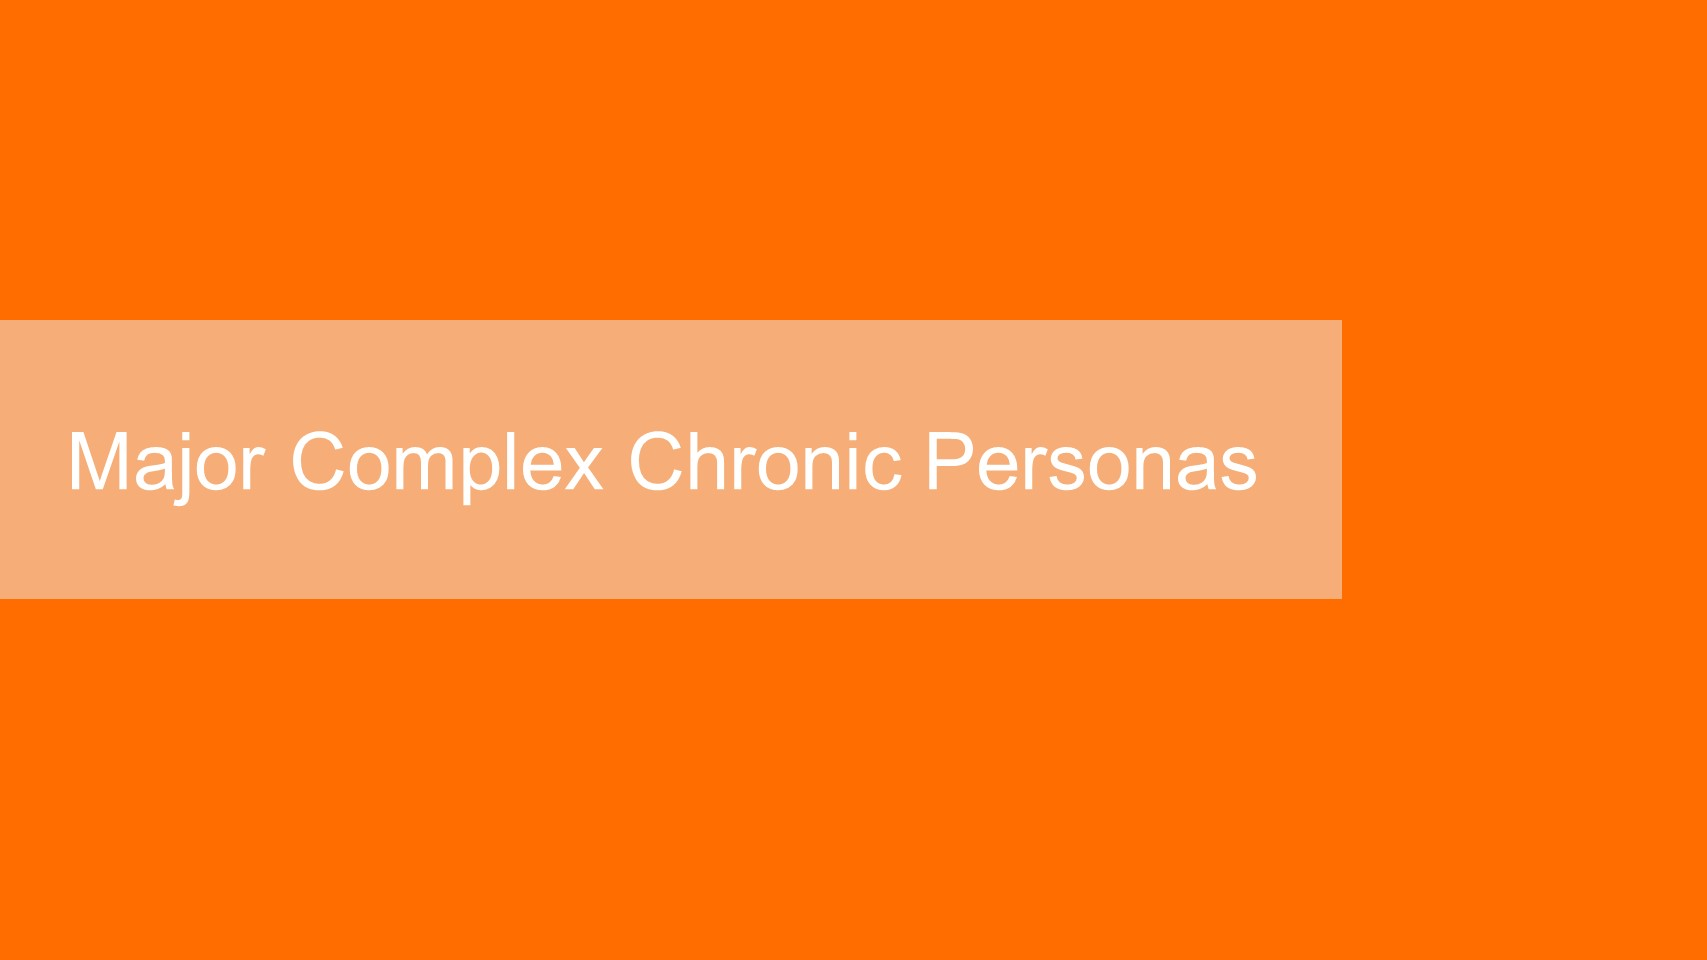 IMPORTED: __media_images_blog_2016_dec_hnhc_personas_slider_complex_chronic_slide1.jpg